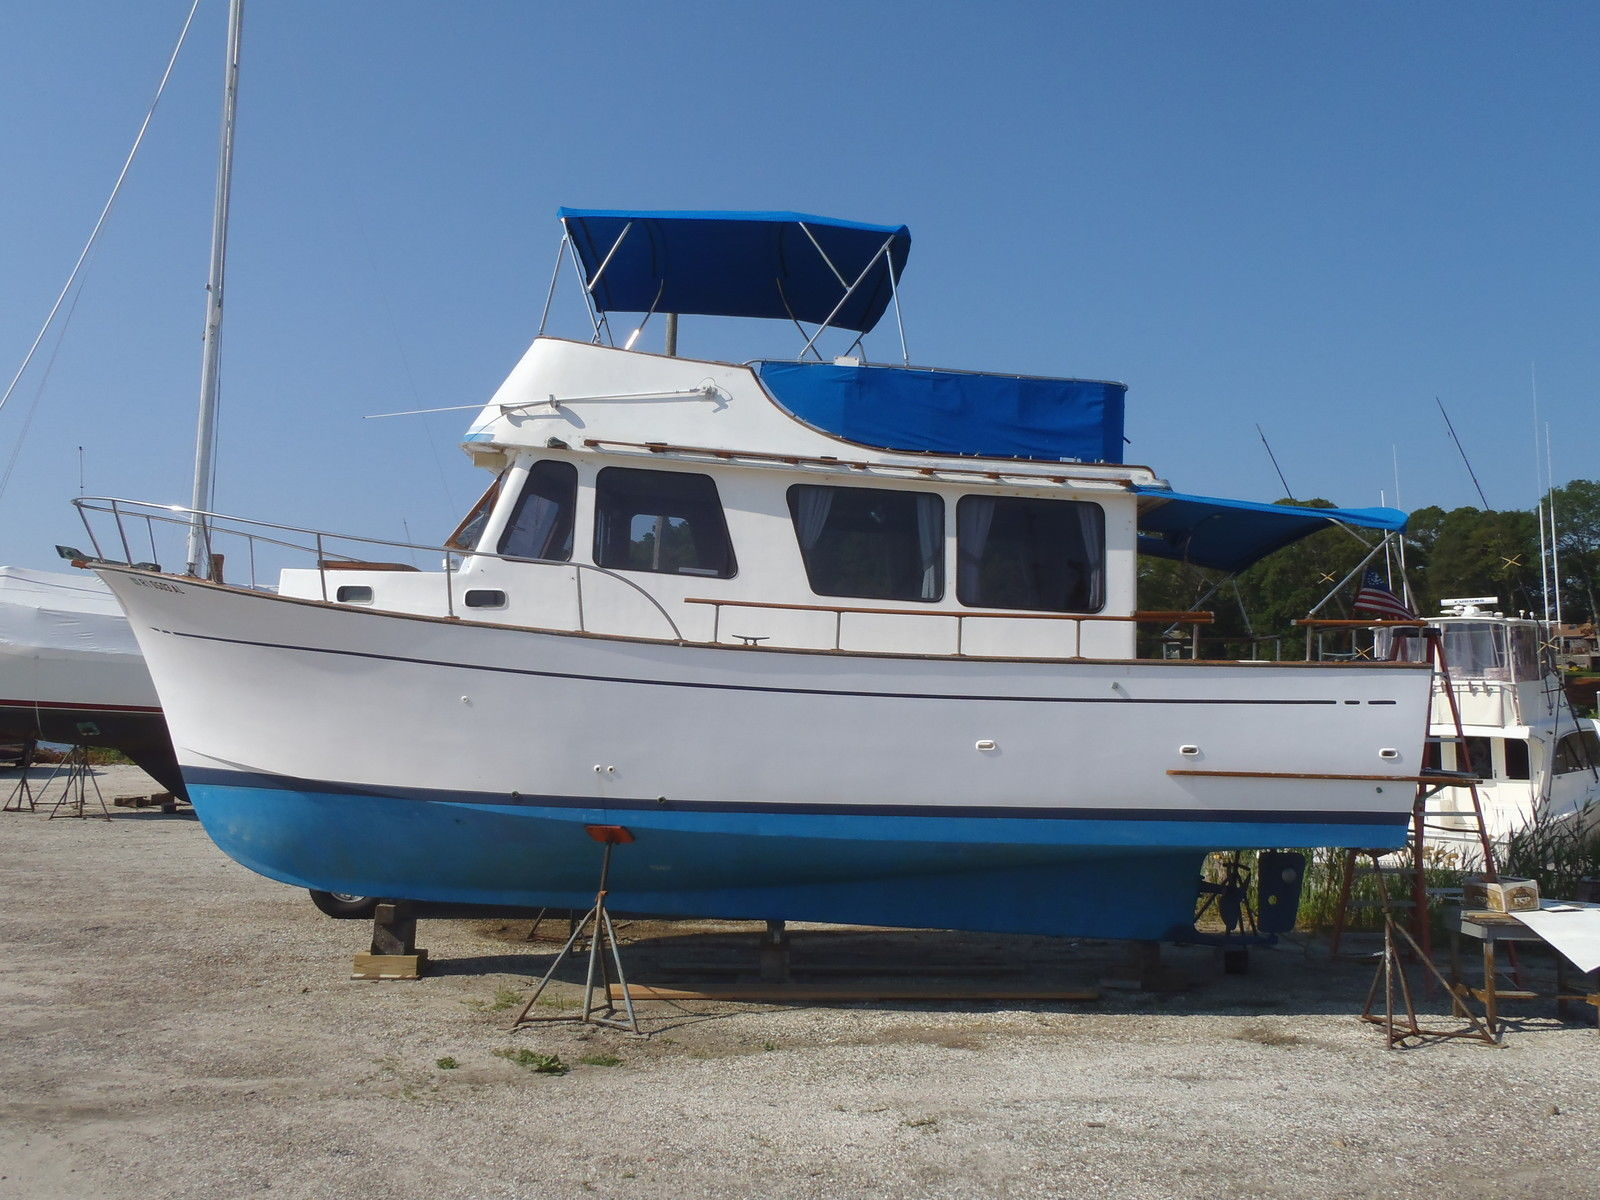 An older boat, such as this Marine Trader 34 Sedan, will probably have a few issues that a proper survey will identify.